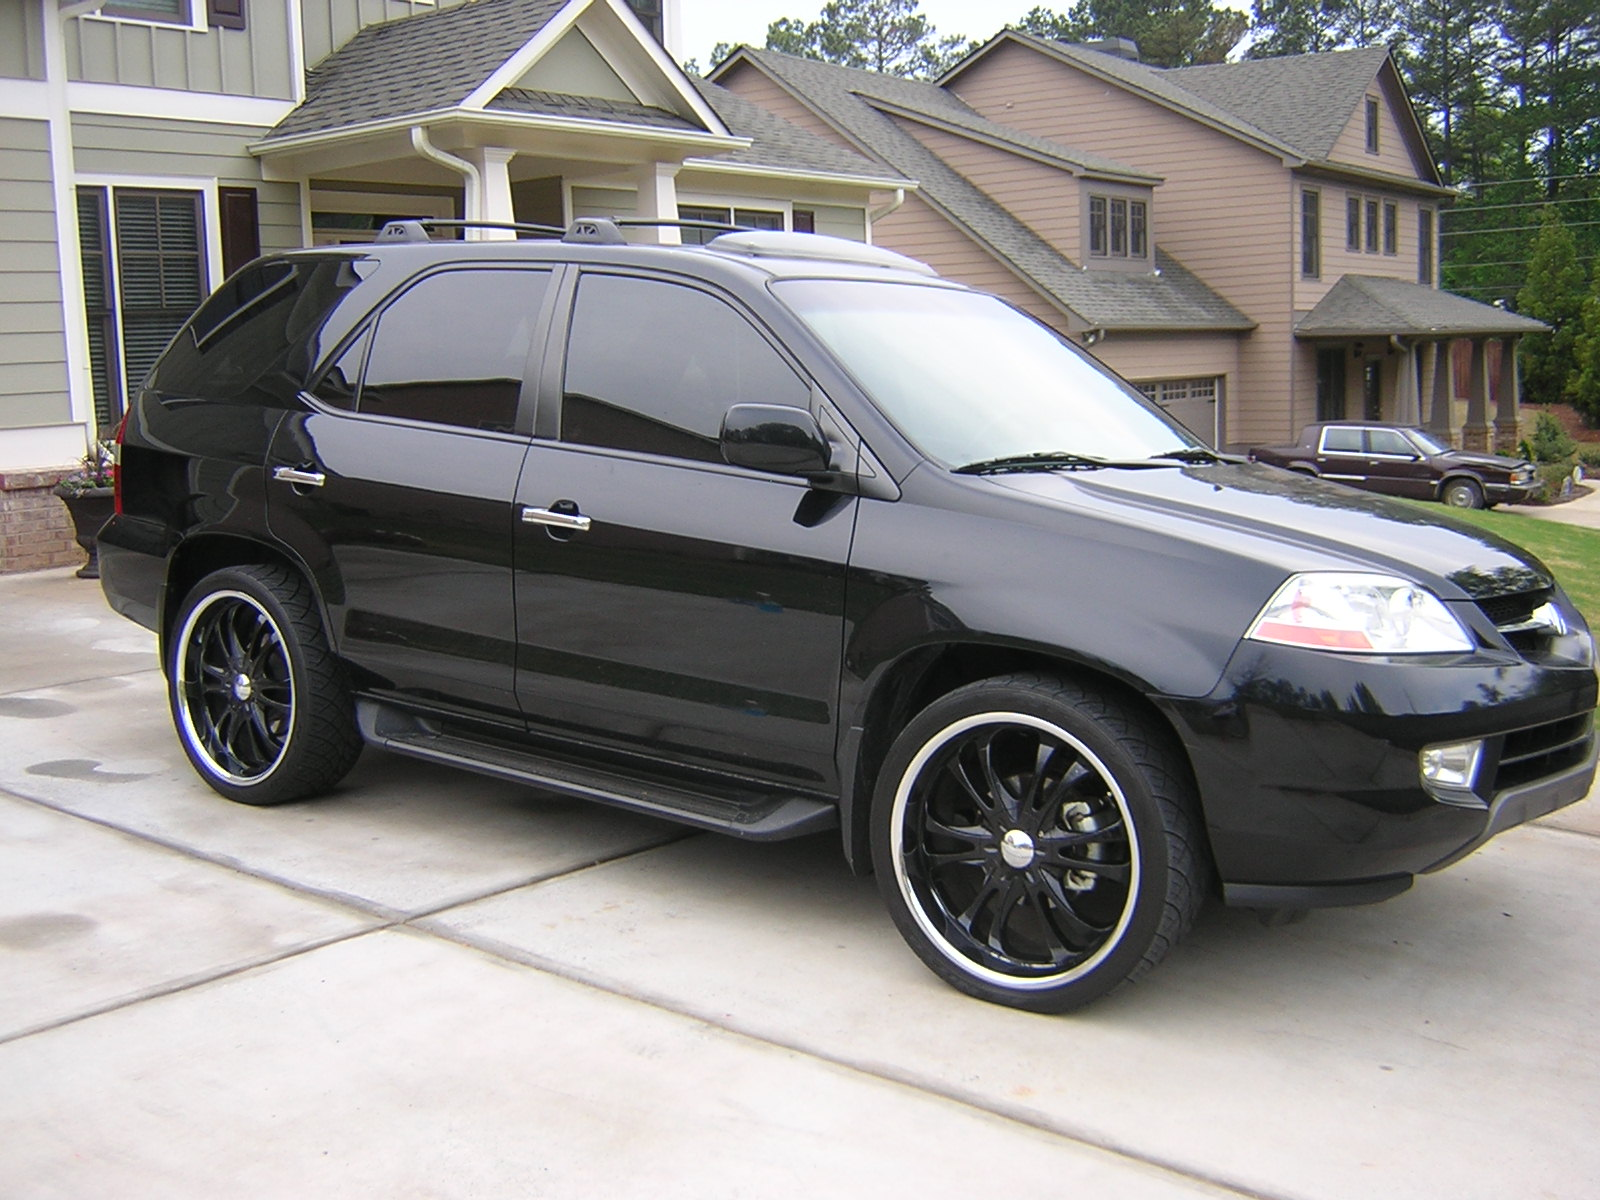 2002 Acura MDX Touring picture